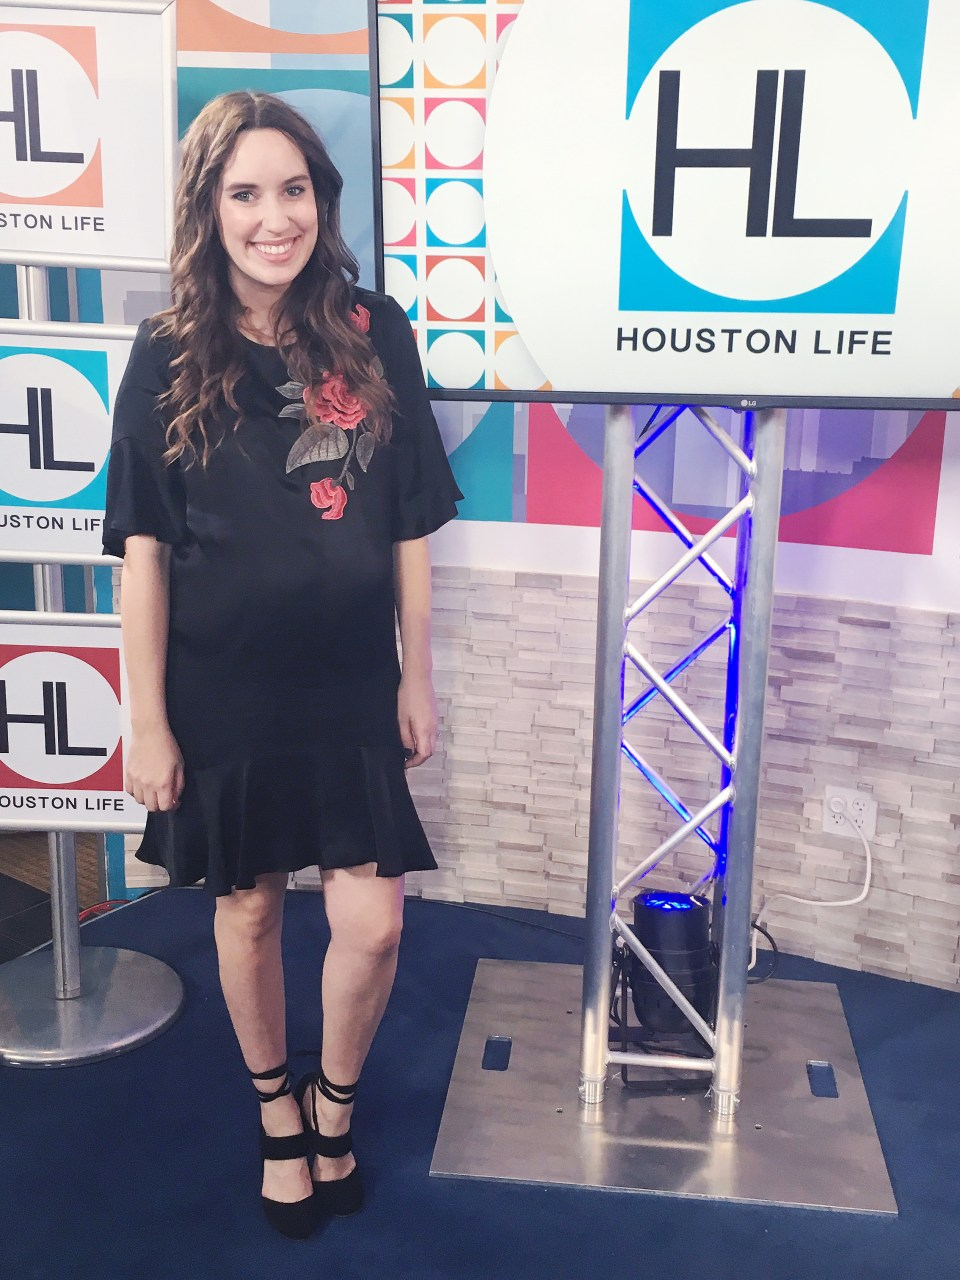 Houston fashion blogger Alice Kerley shares a holiday style segment on Houston Life on KPRC Click2Houston.